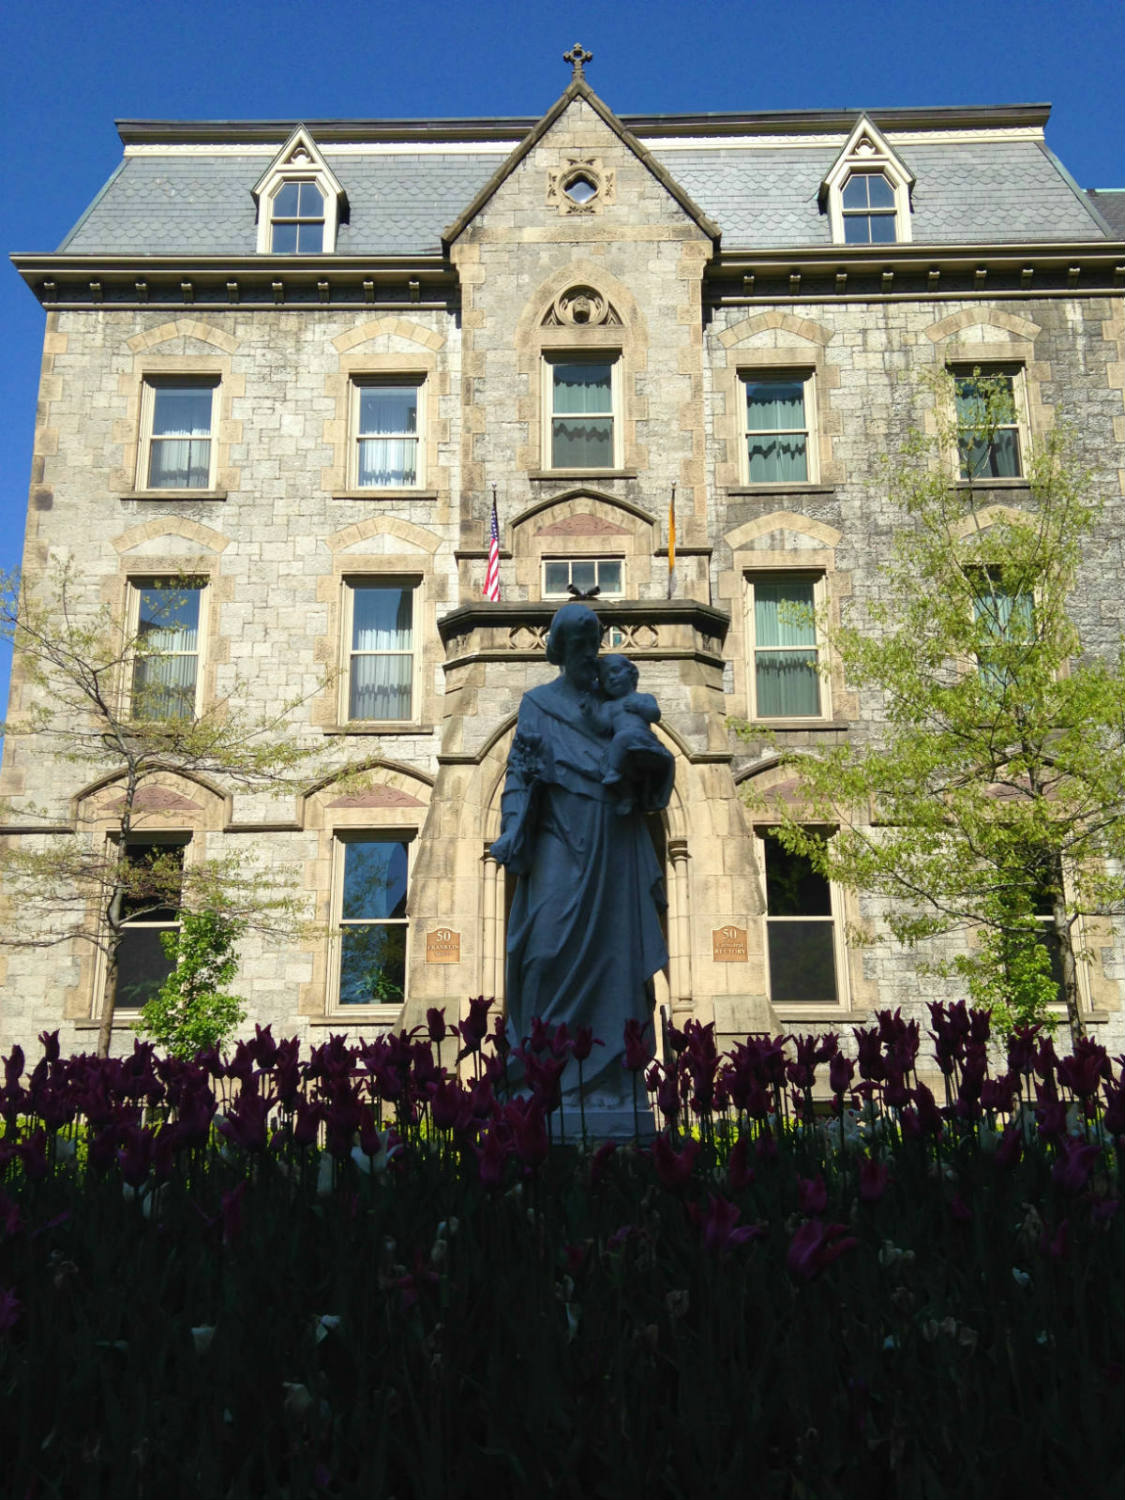 Garden Statue at St. Joseph Cathedral in Buffalo, New York